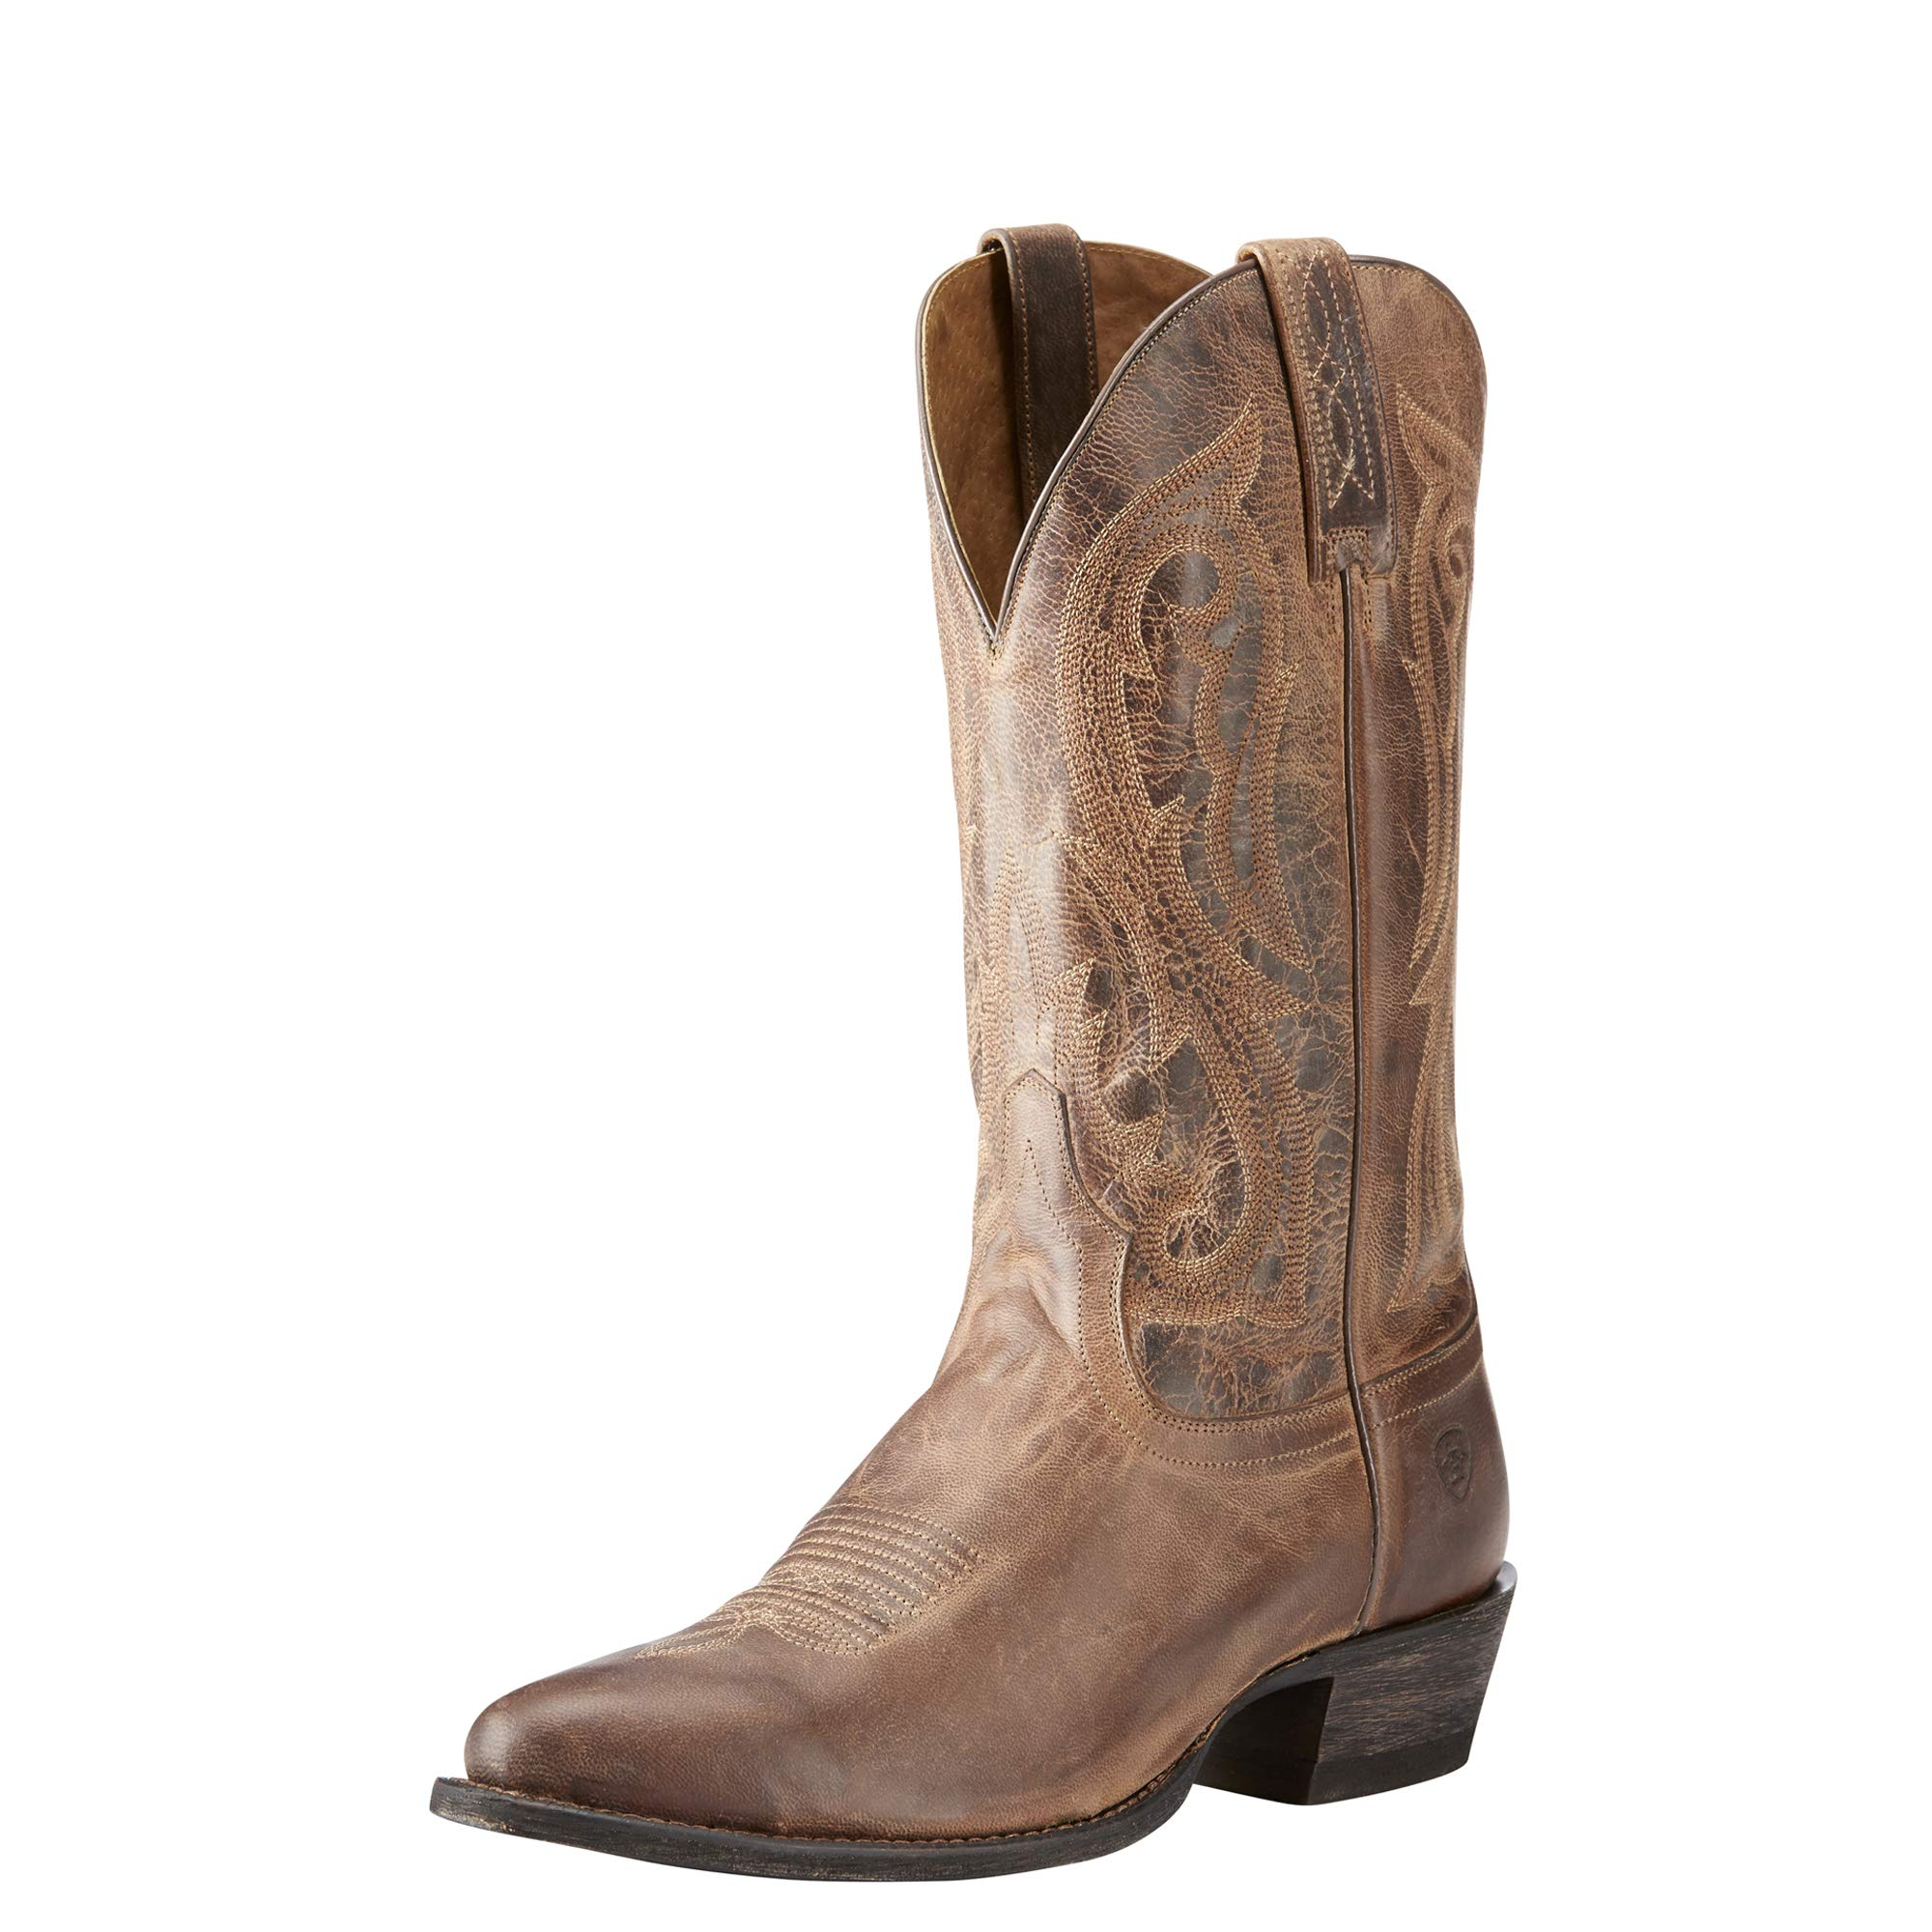 ARIAT Men's Circuit R Toe Western Boot, Warm Stone, 9.5 E US by ARIAT